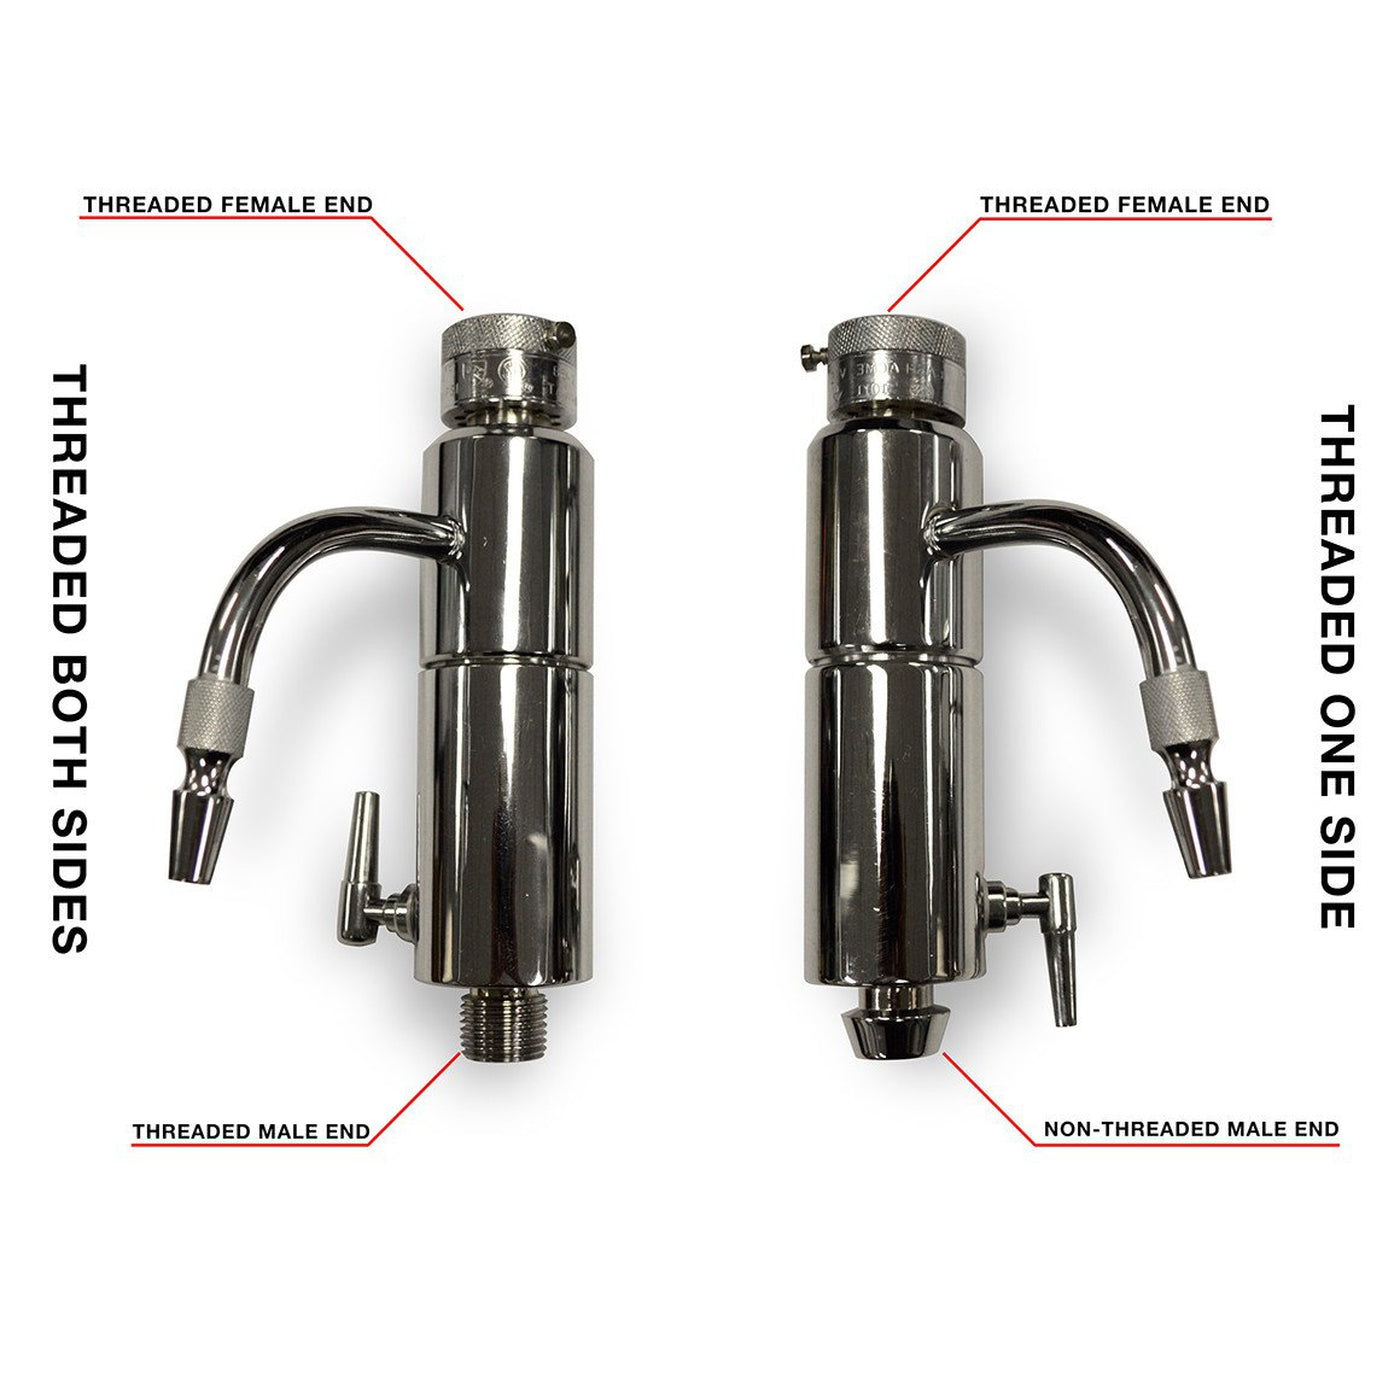 Hydro Aspirator-Sink Station-Mortech Manufacturing Company Inc. Quality Stainless Steel Autopsy, Morgue, Funeral Home, Necropsy, Veterinary / Anatomy, Dissection Equipment and Accessories